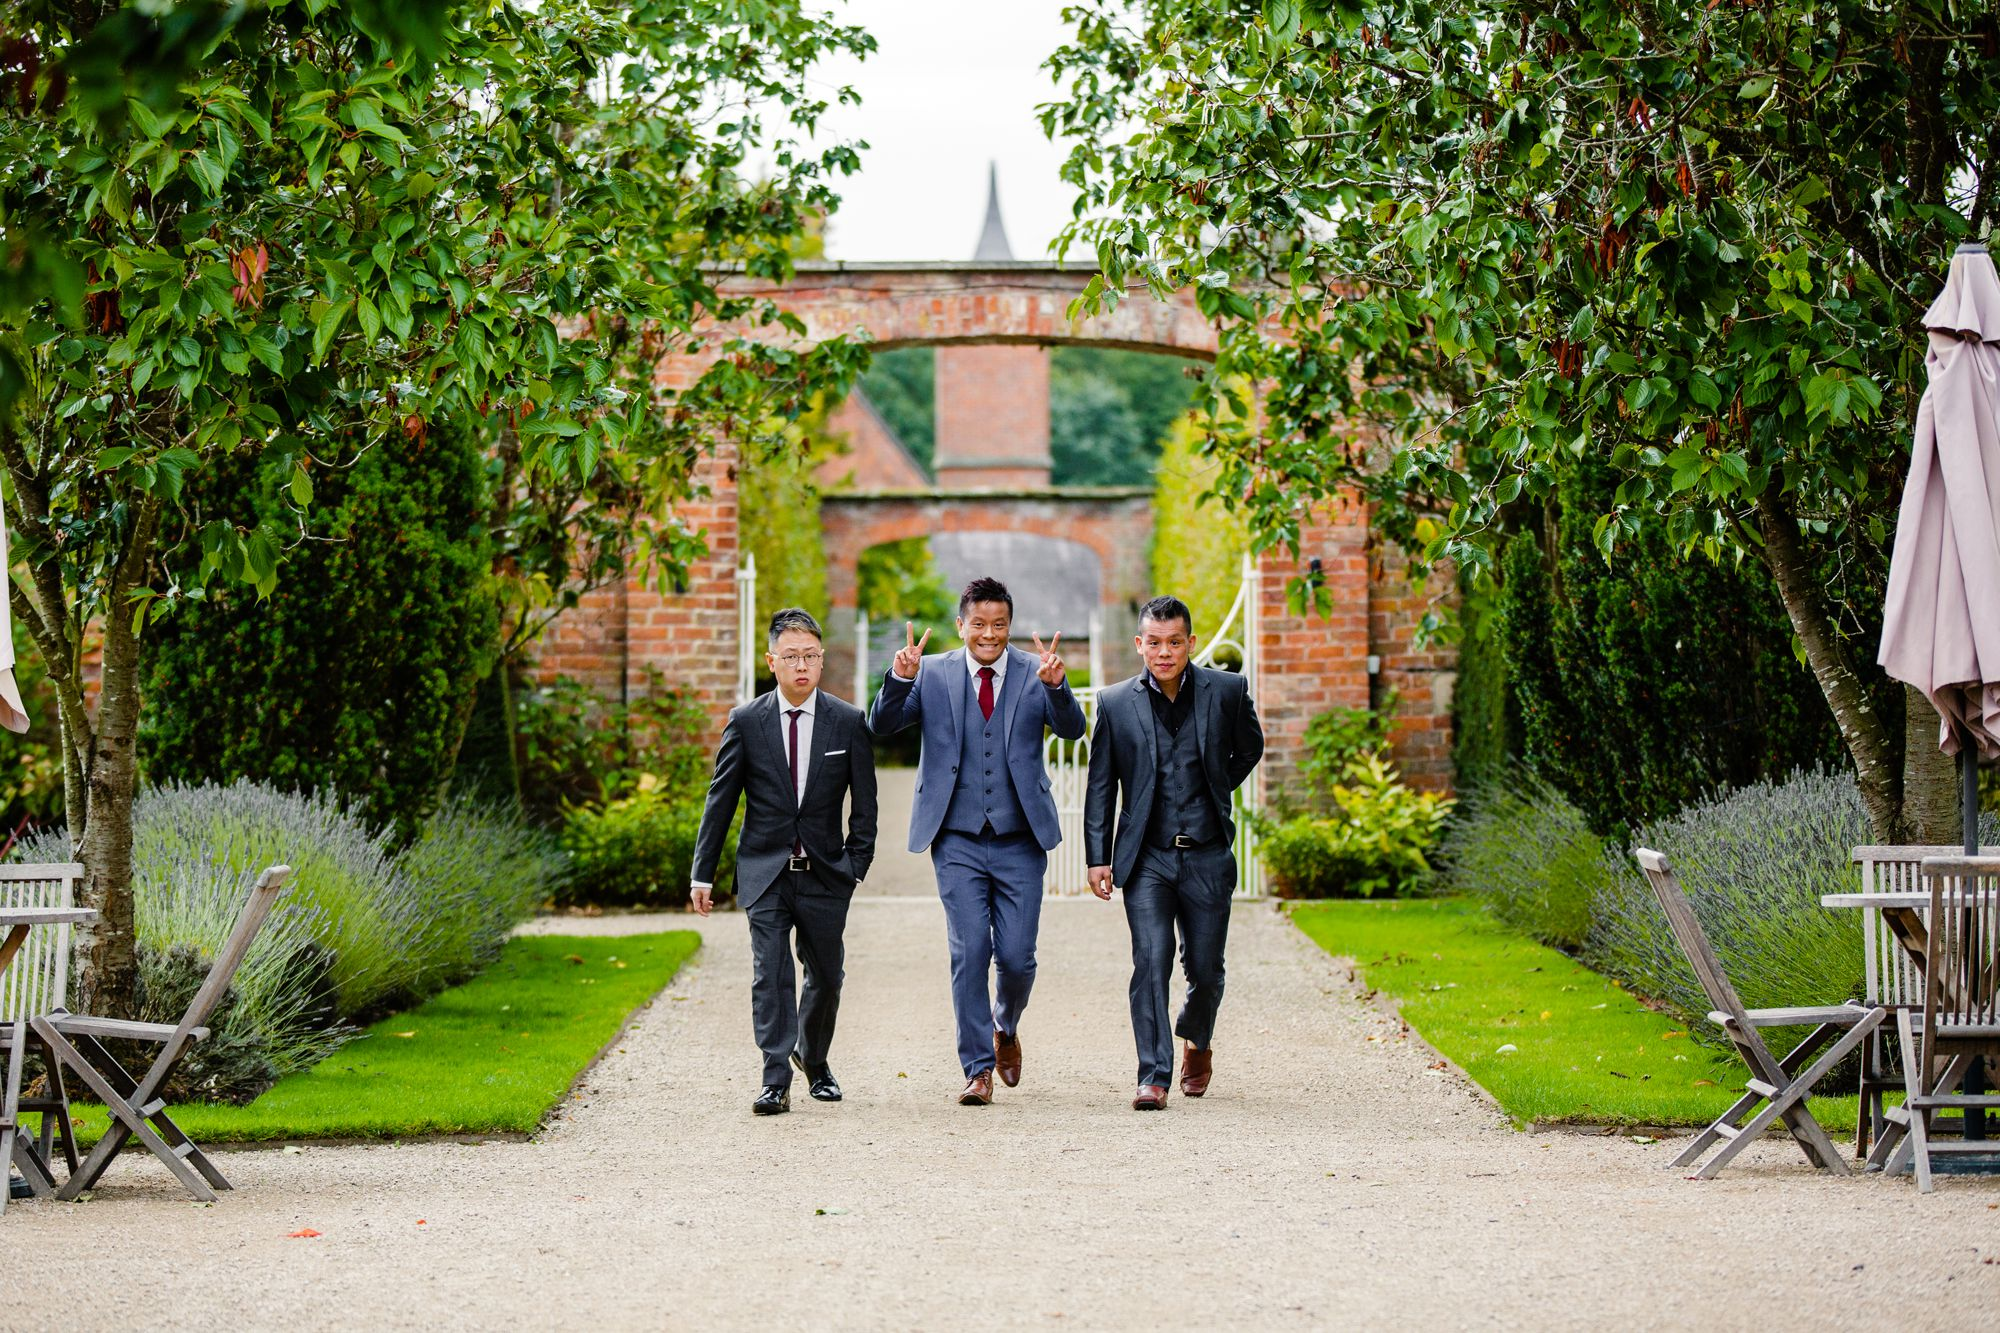 Combermere Abbey Cheshire Wedding Photographer-40.jpg